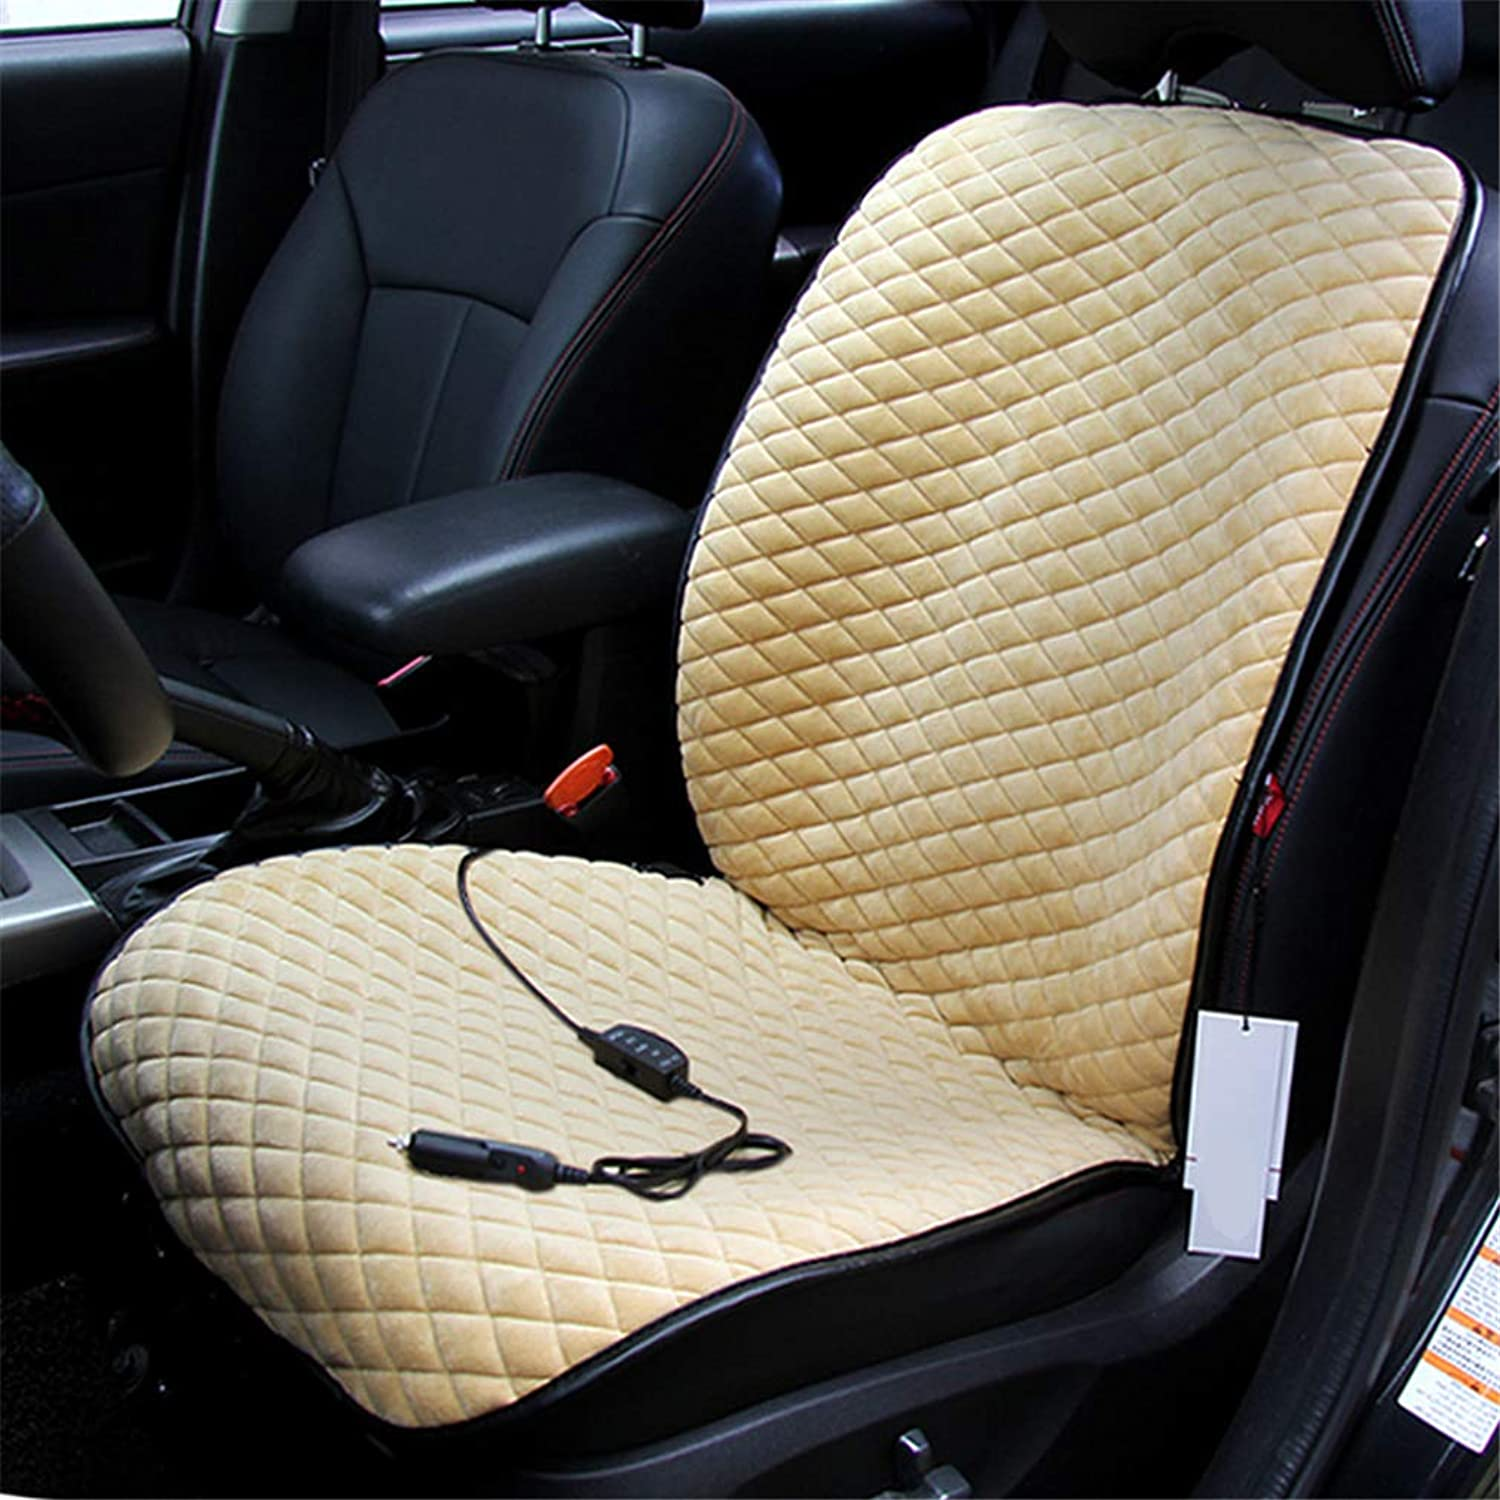 Heated Car Seat Covers Universal Heating Car 12V Cigarette Lighter Seat Cushion (105 × 48cm)